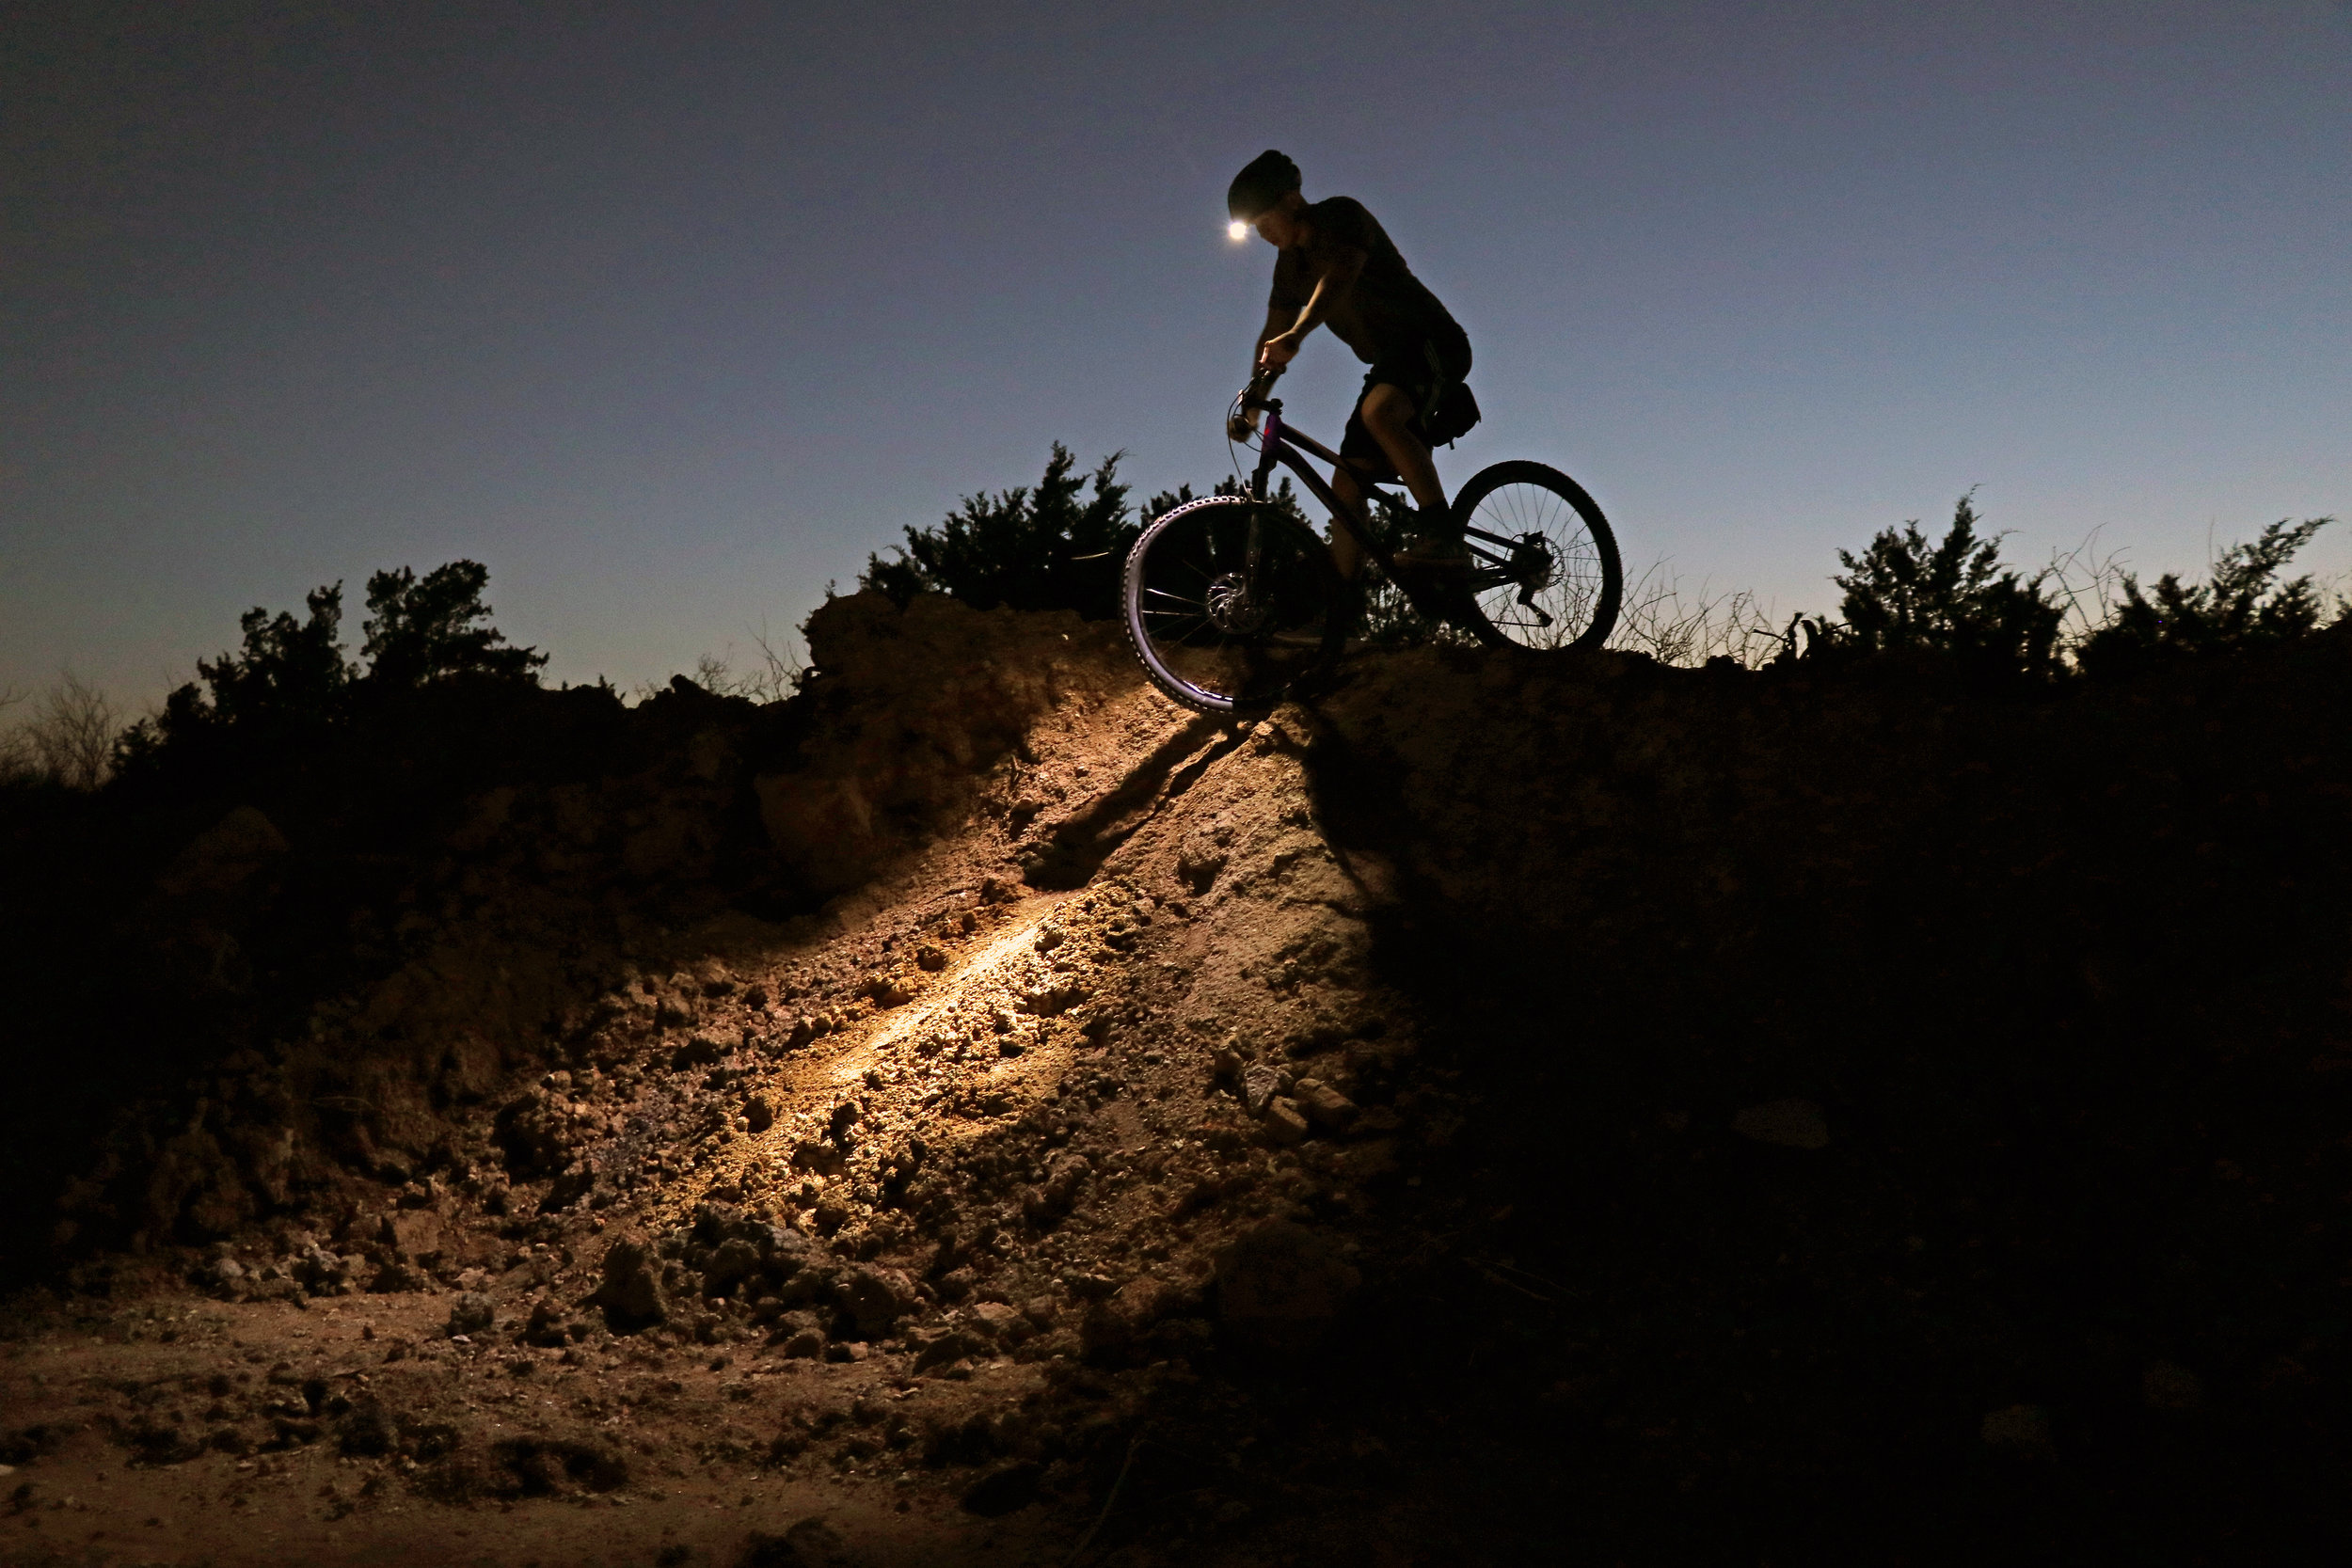 Clint Taylor with his Coast FL78R headlamp and Specialized Comp 29 mountain bike